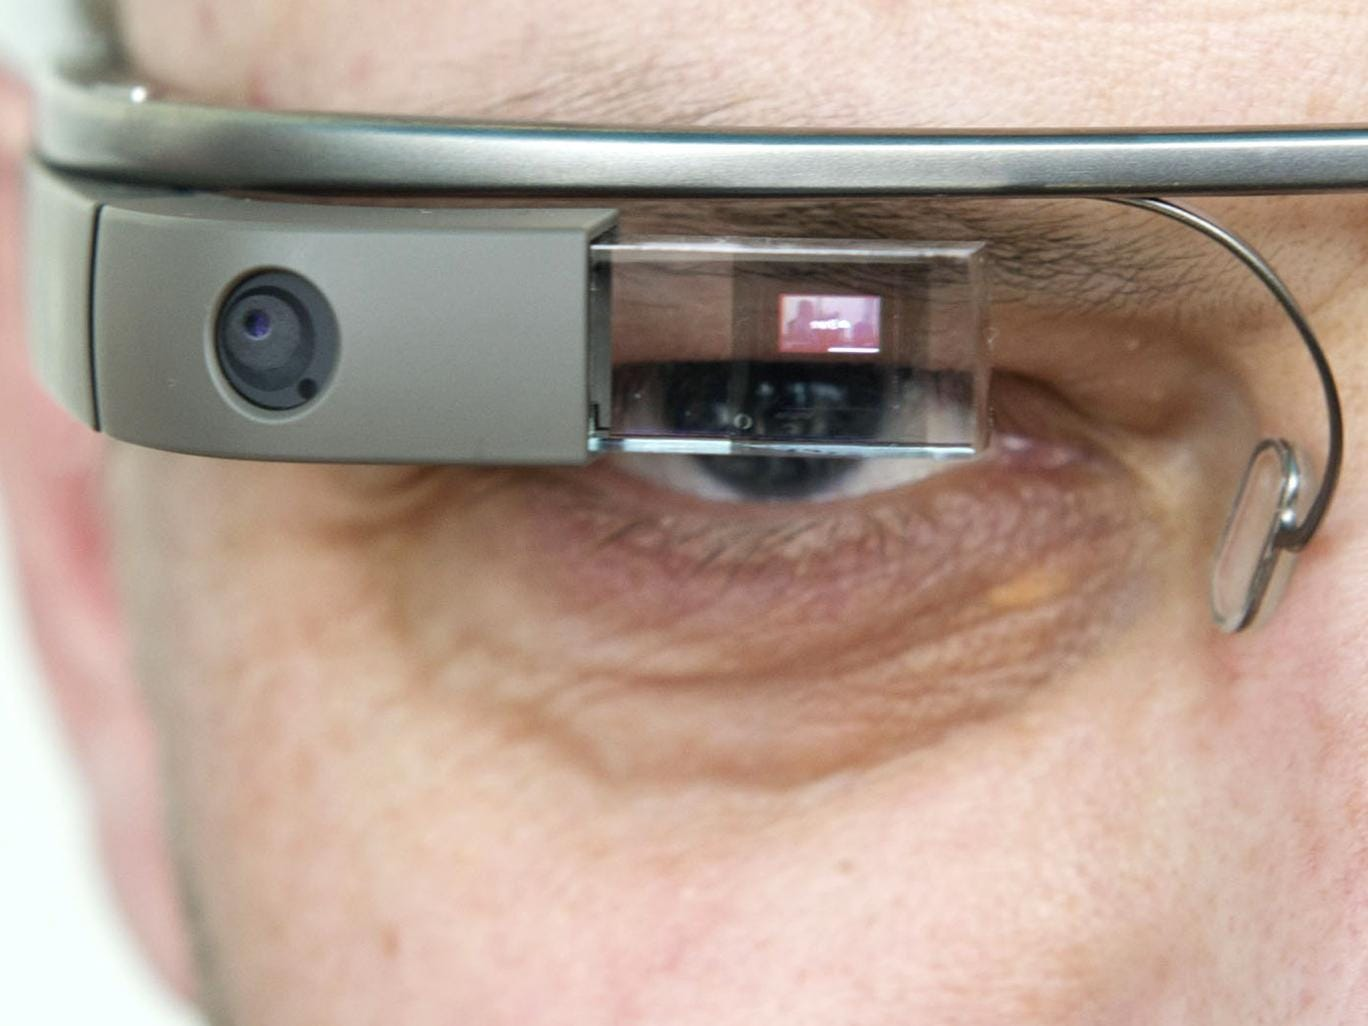 Google Glasses will make suggestions based on what you're seeing